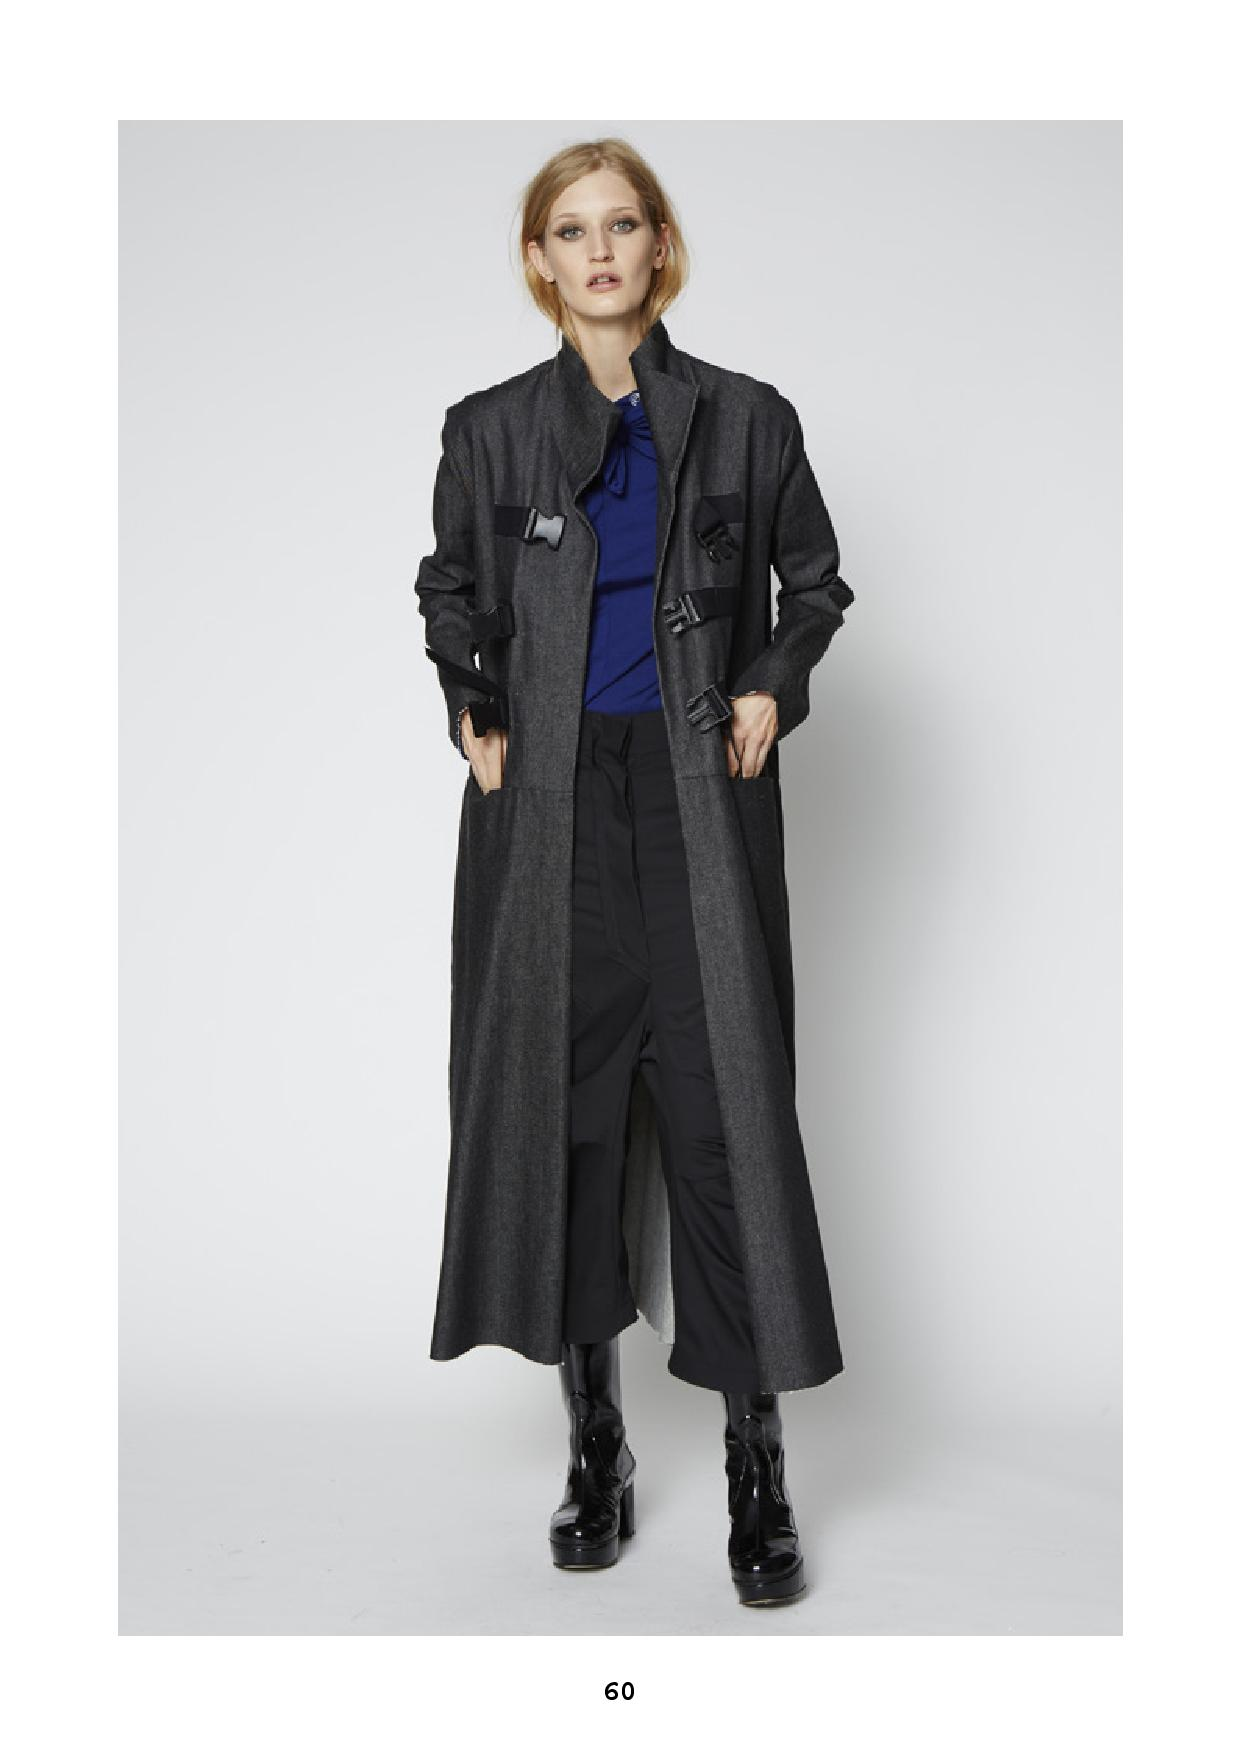 aw17 women s keypieces-page-061